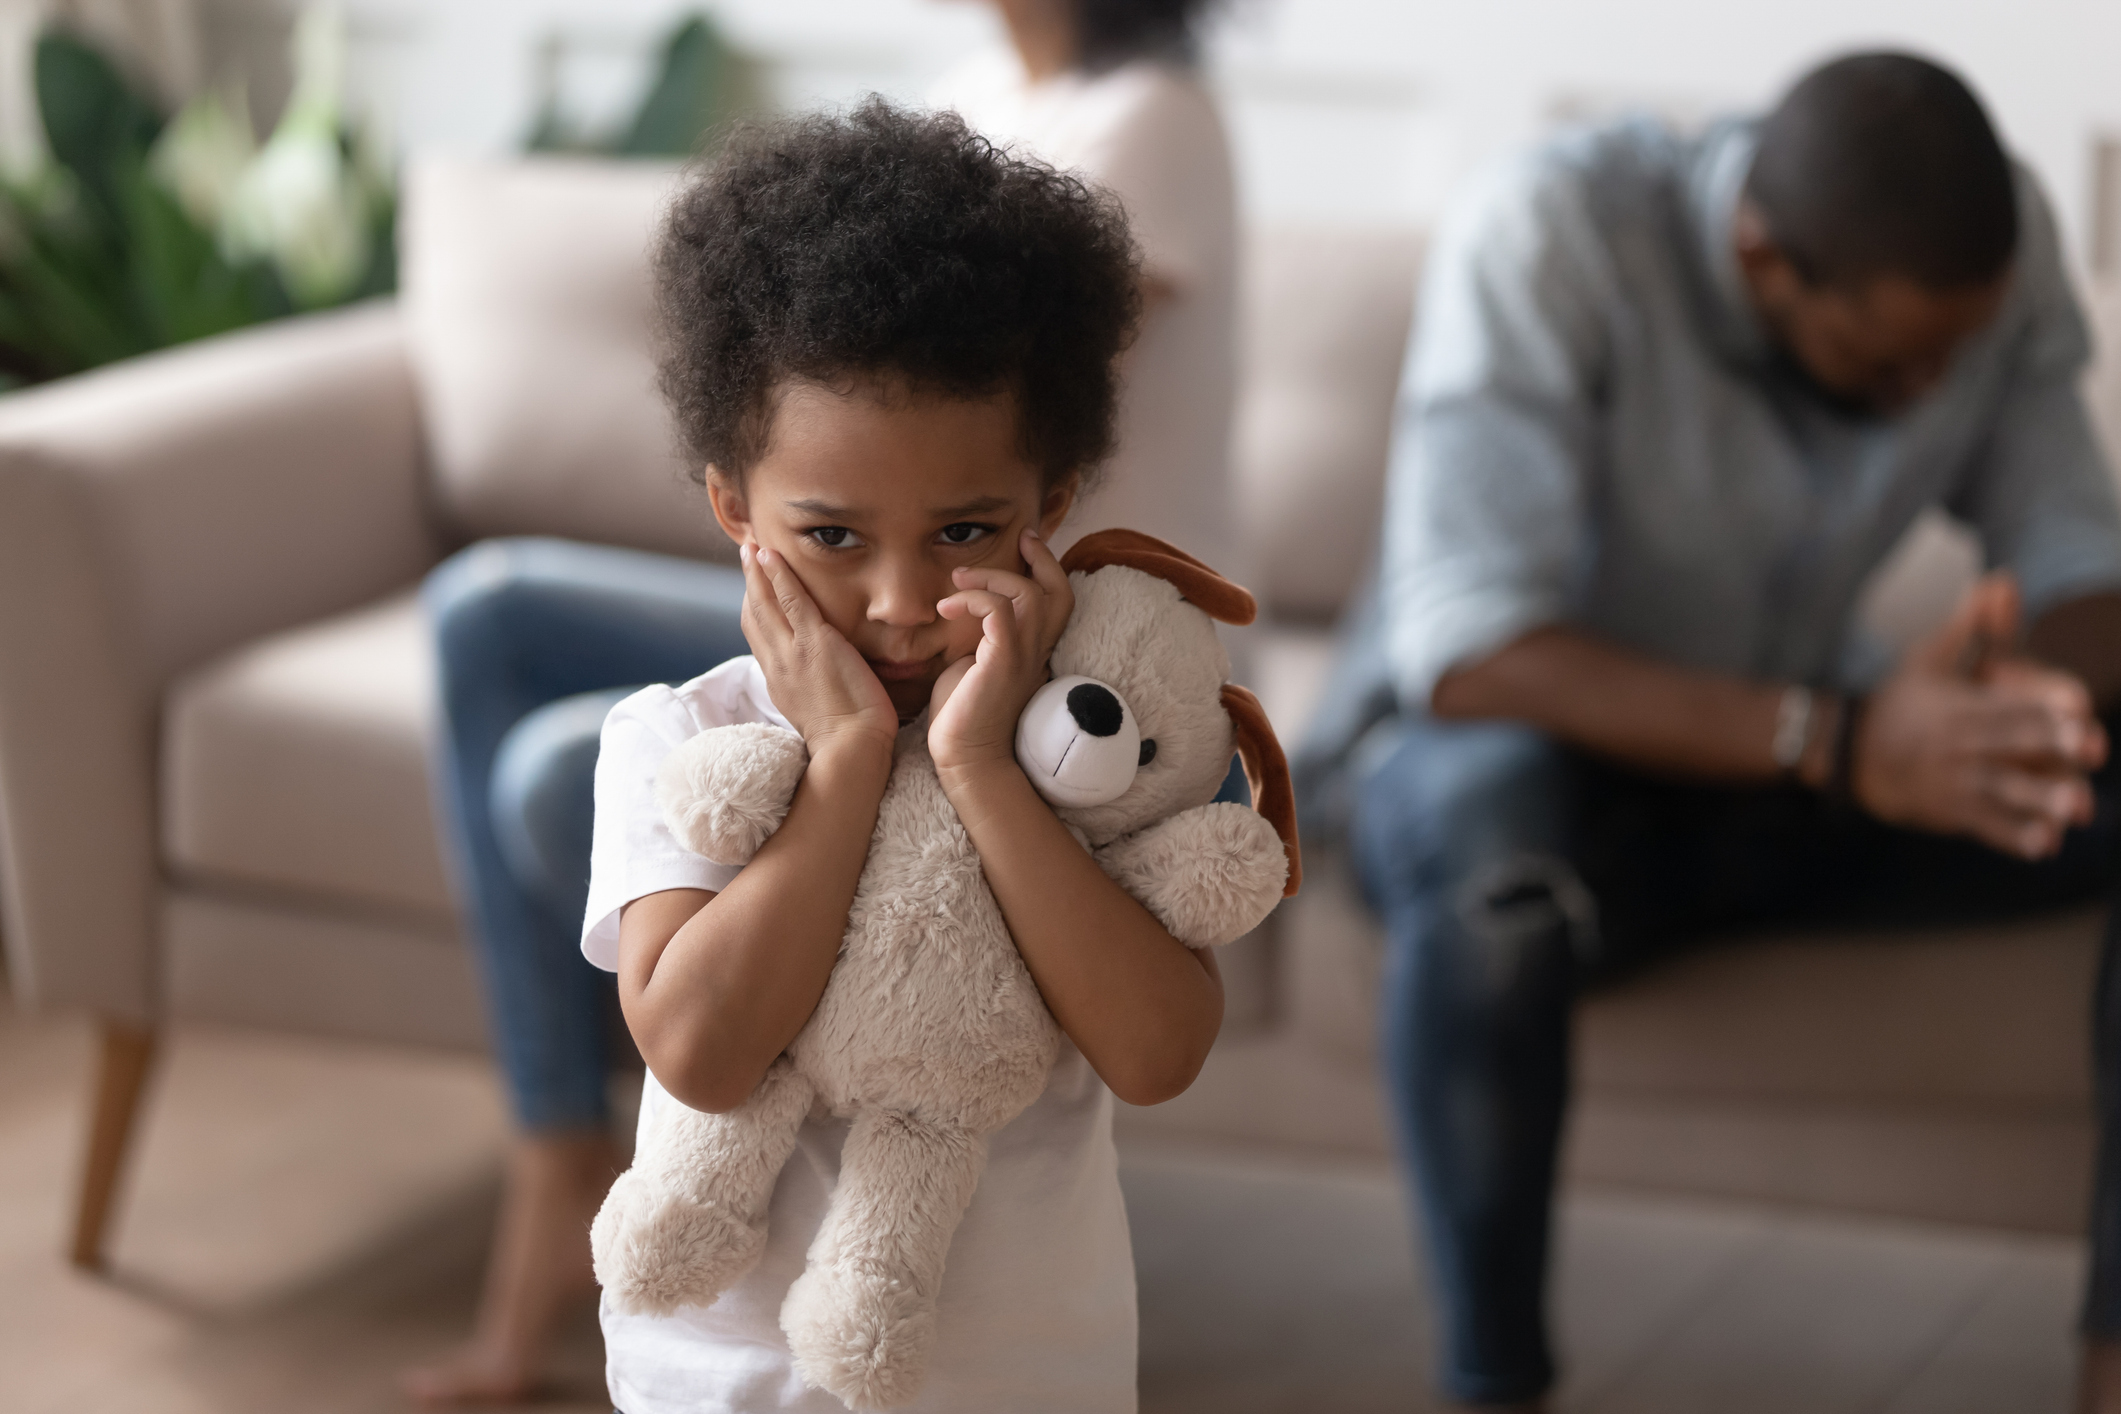 Image of small child holding a teddy bear.